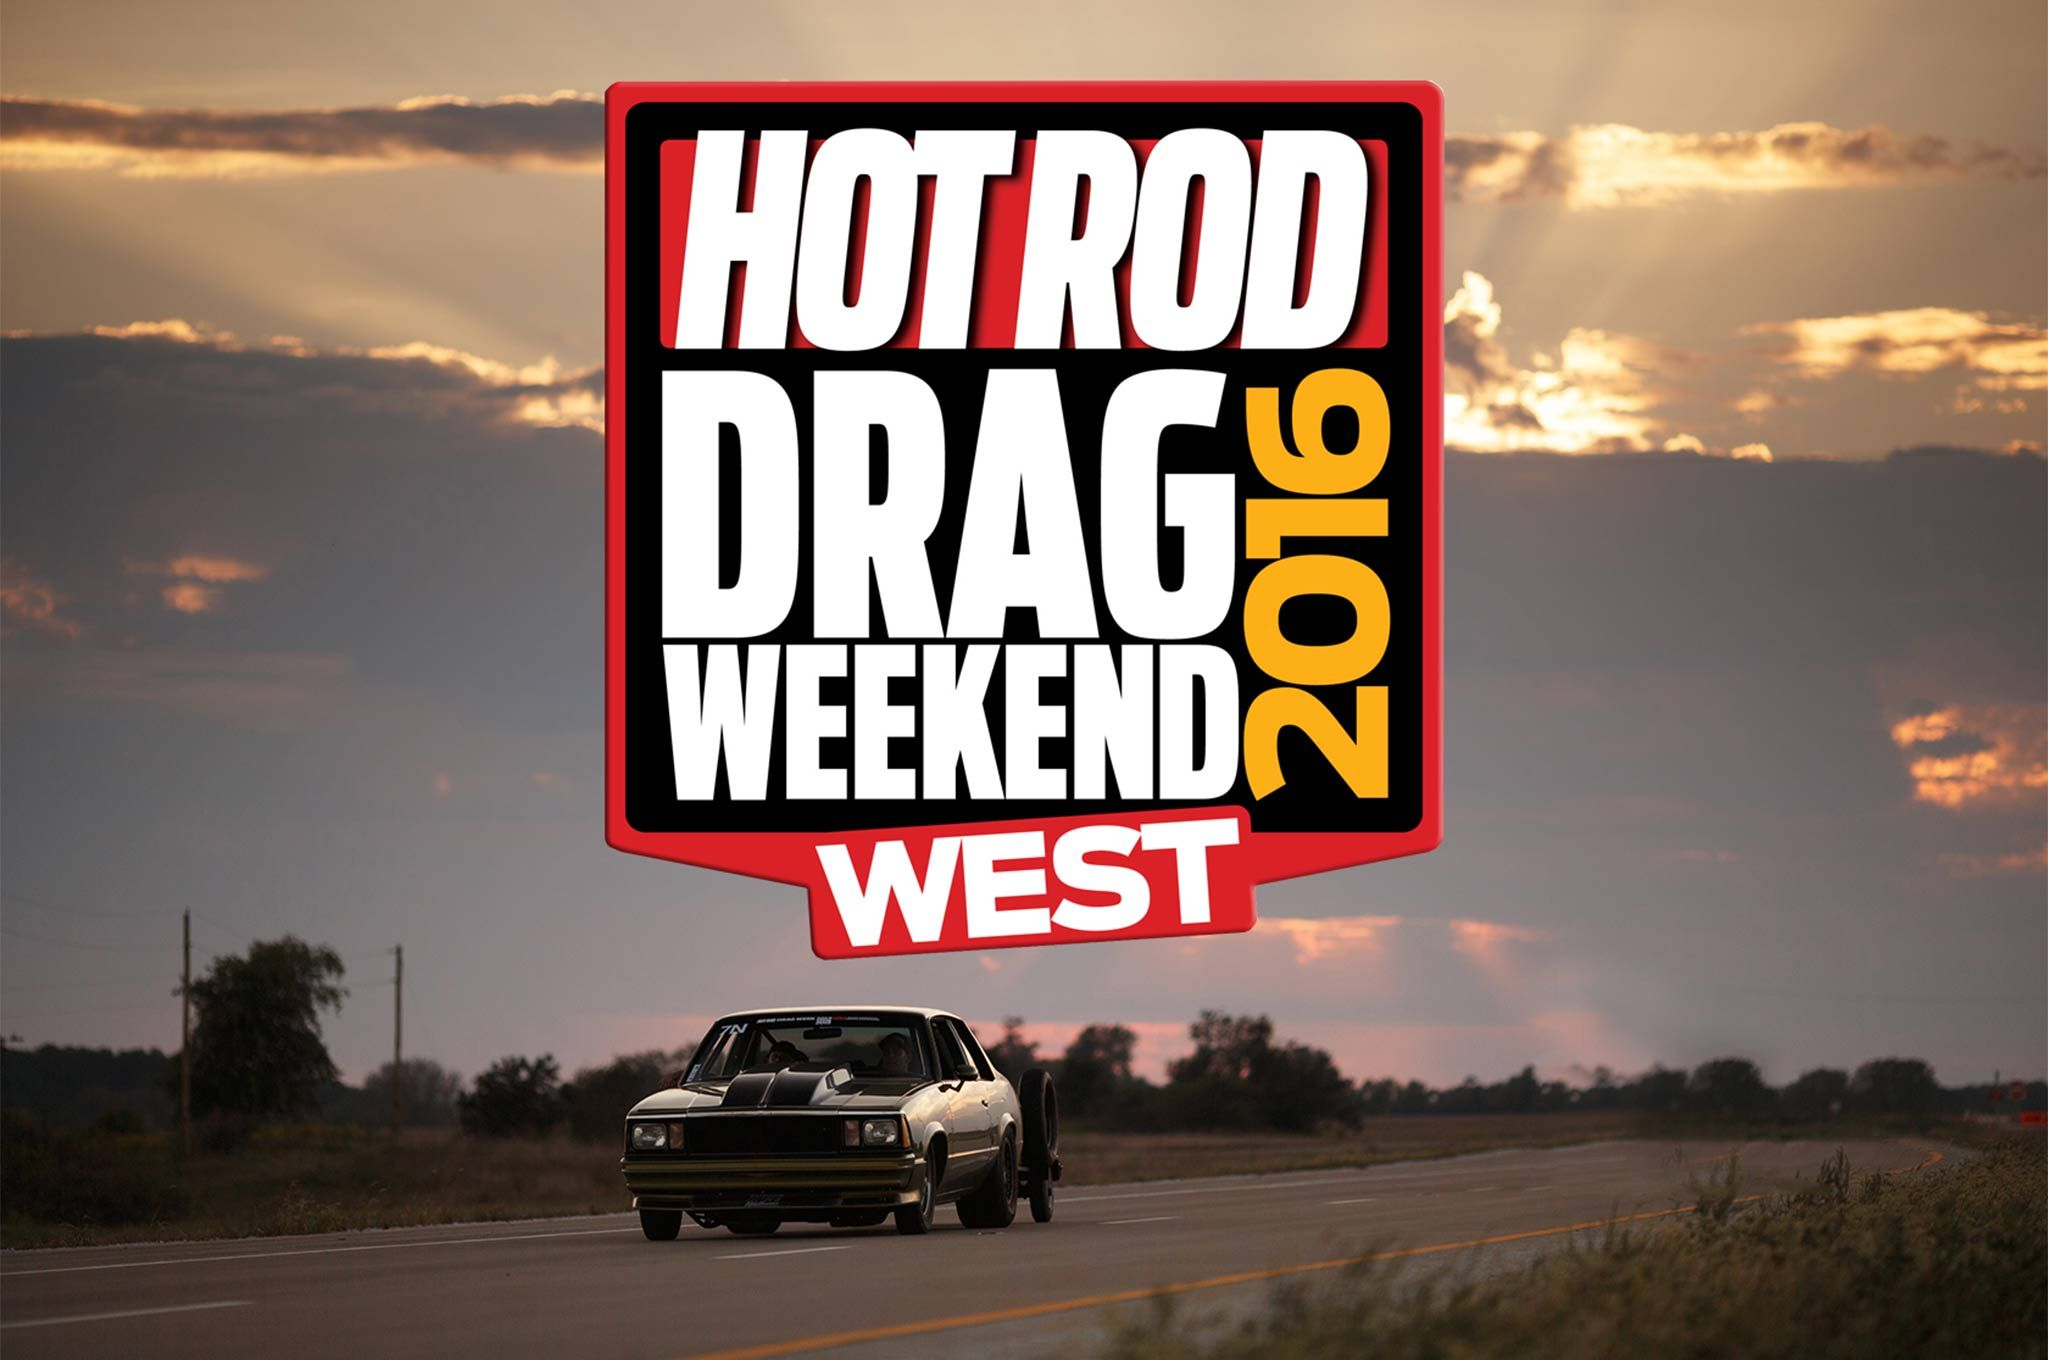 001-drag-weekend-west